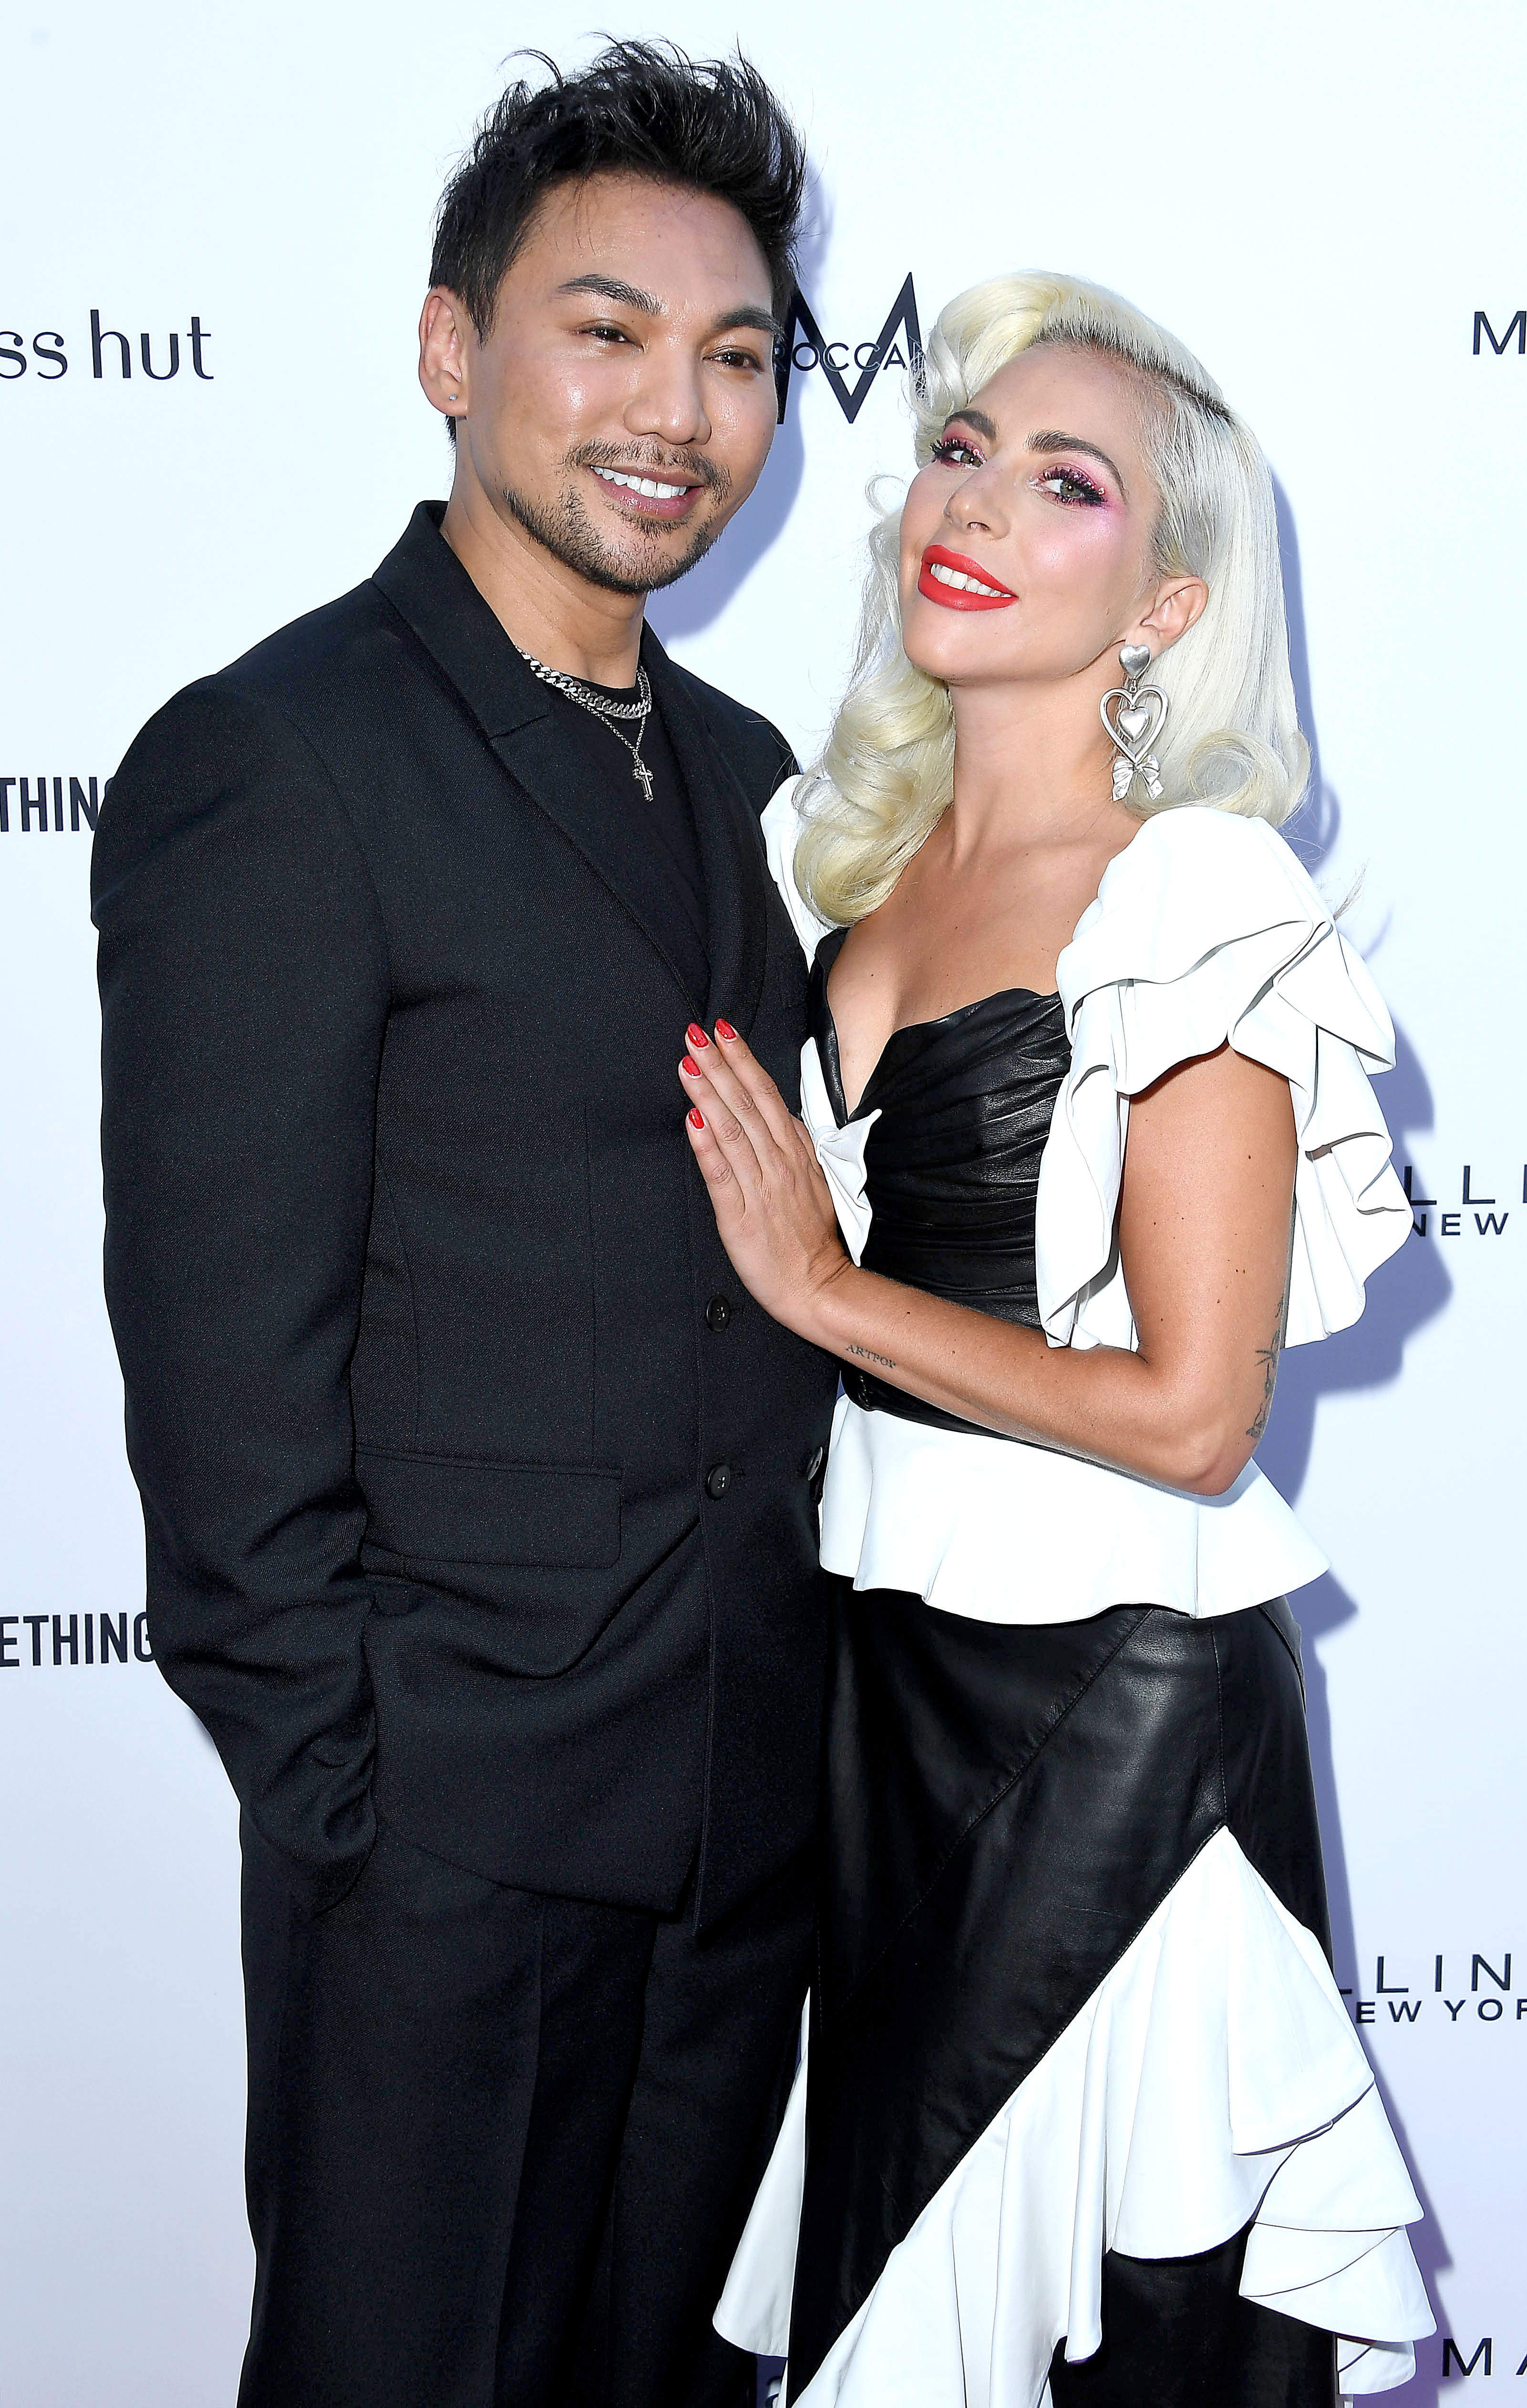 Lady Gaga Reveals Her Wig Secrets in Heartfelt Tribute to Her Hairstylist - Frederic Aspiras and Lady Gaga arrive at The Daily Front Row's 5th Annual Fashion Los Angeles Awards at Beverly Hills Hotel on March 17, 2019 in Beverly Hills, California.